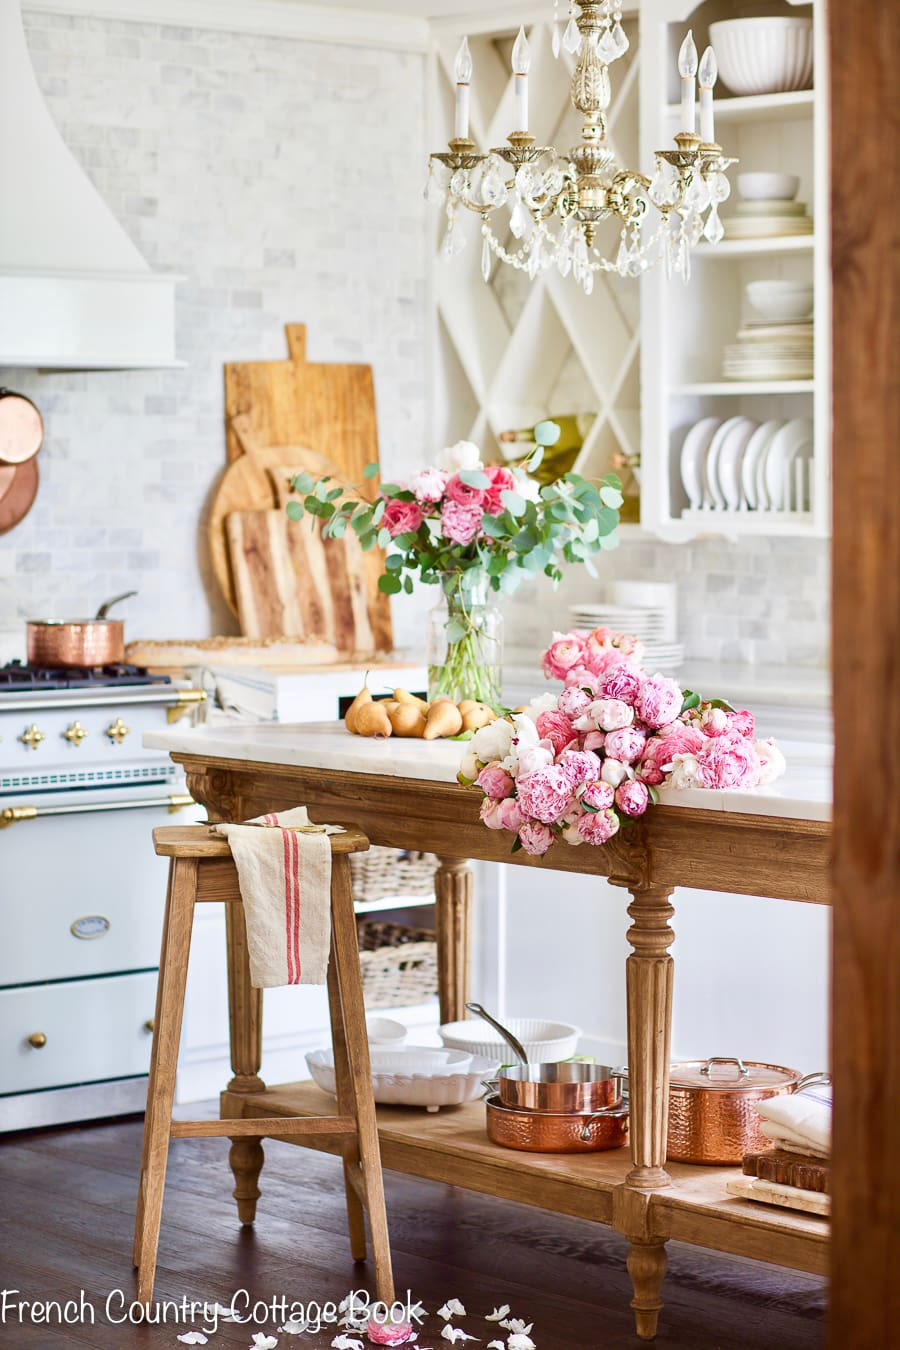 15 Simple Winter Decorating Ideas French Country Cottage